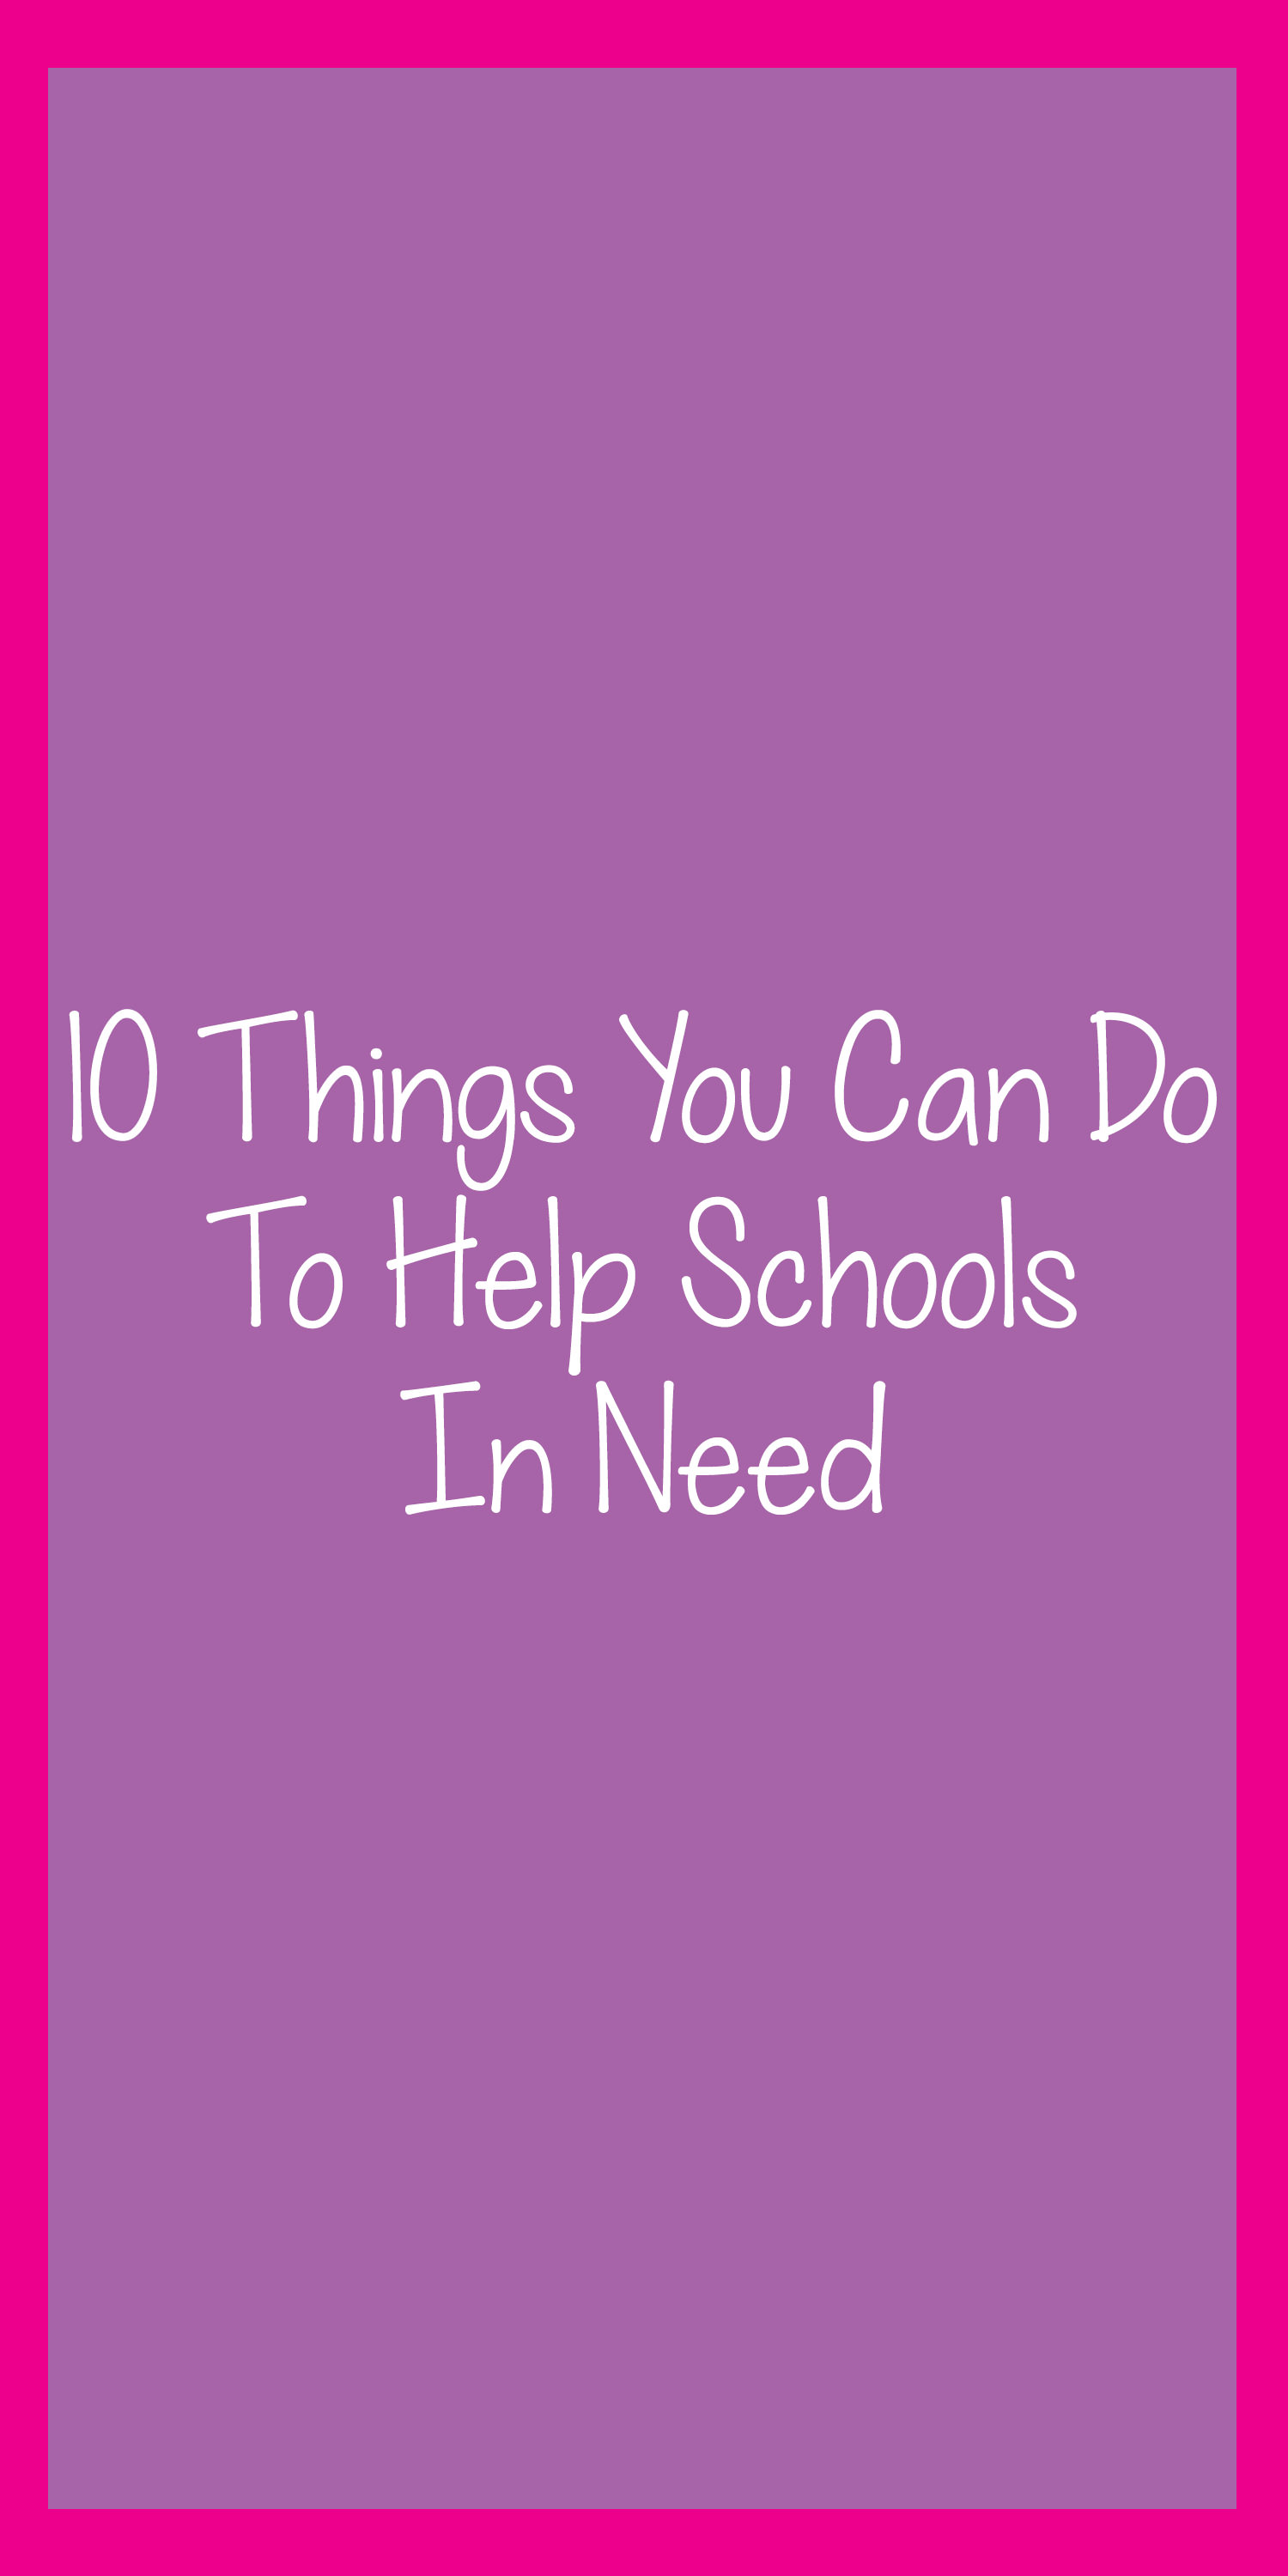 Want to help schools in your area? These ten simple tips will show you how to help schools in need!